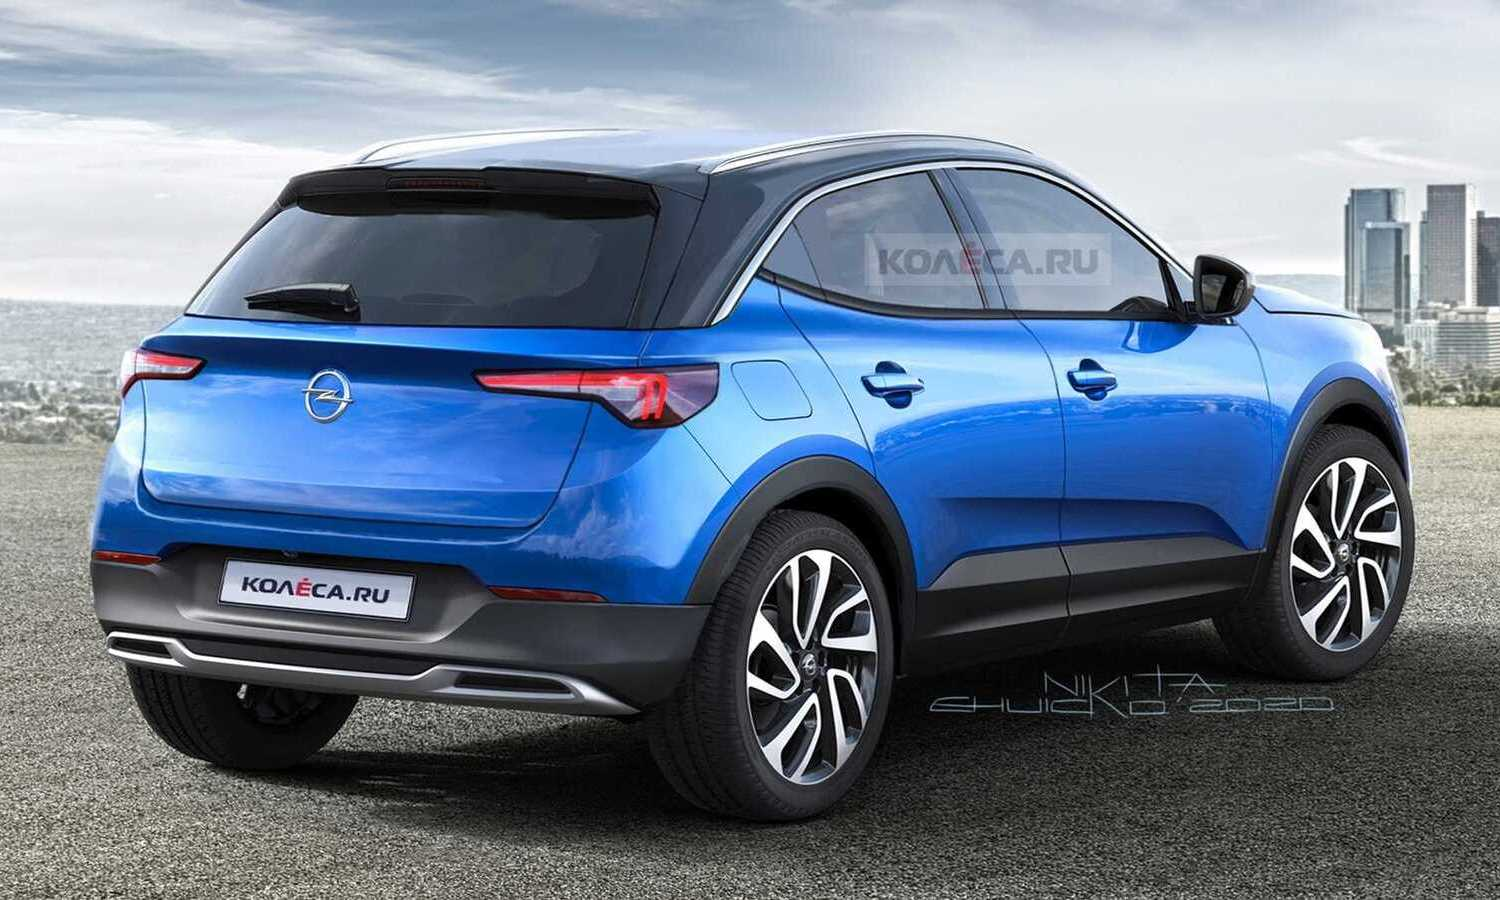 Opel Mokka X 2021 rear rendering by Kolesa